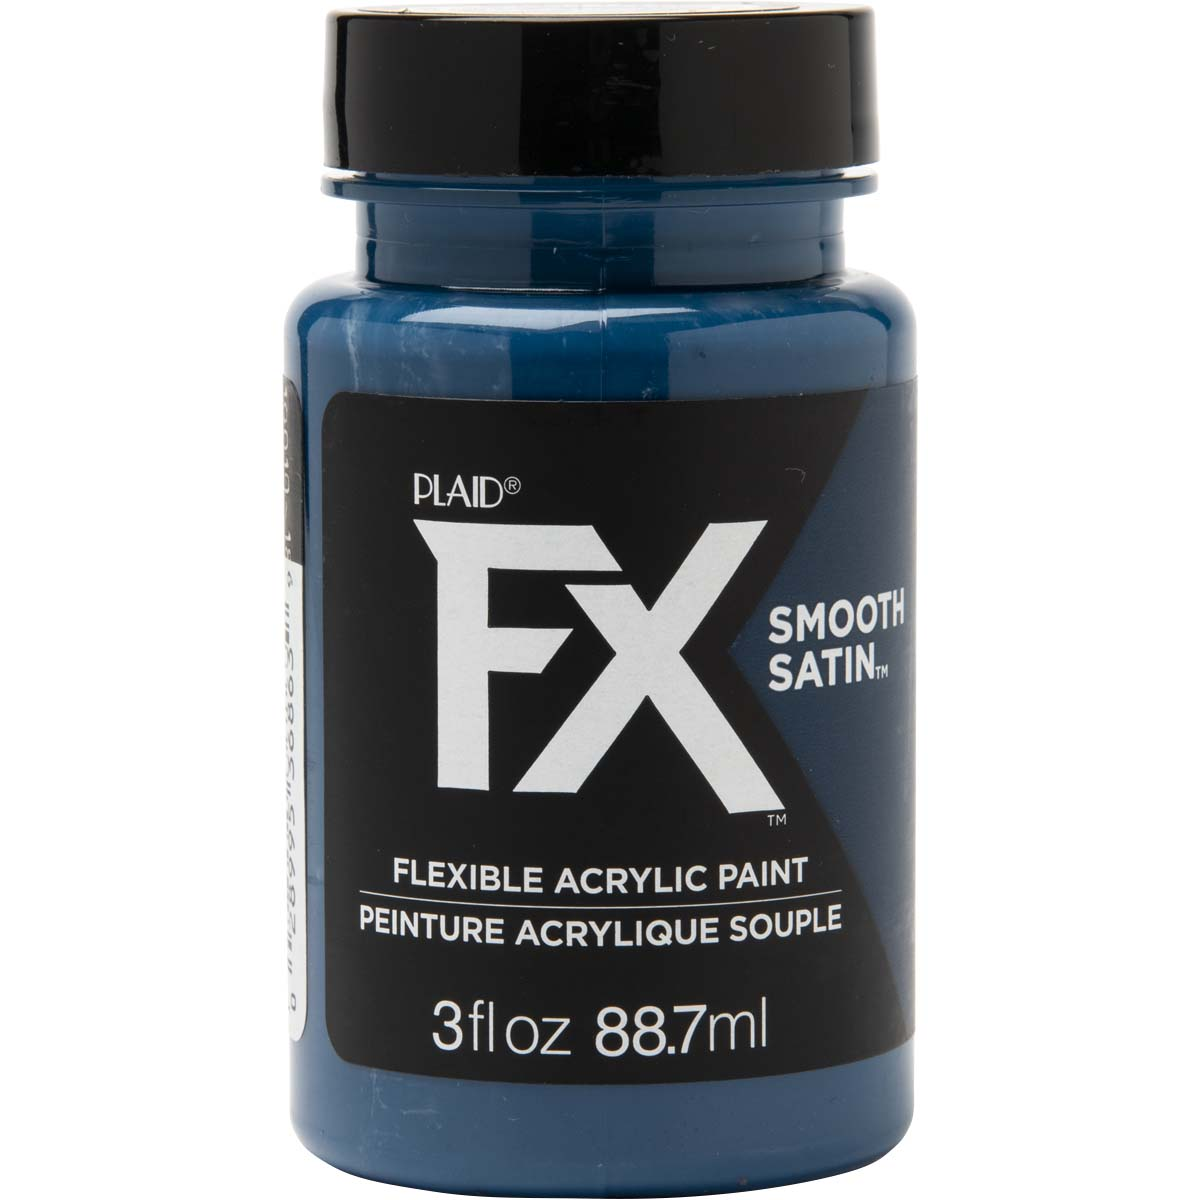 PlaidFX Smooth Satin Flexible Acrylic Paint - Commander Navy, 3 oz. - 36863